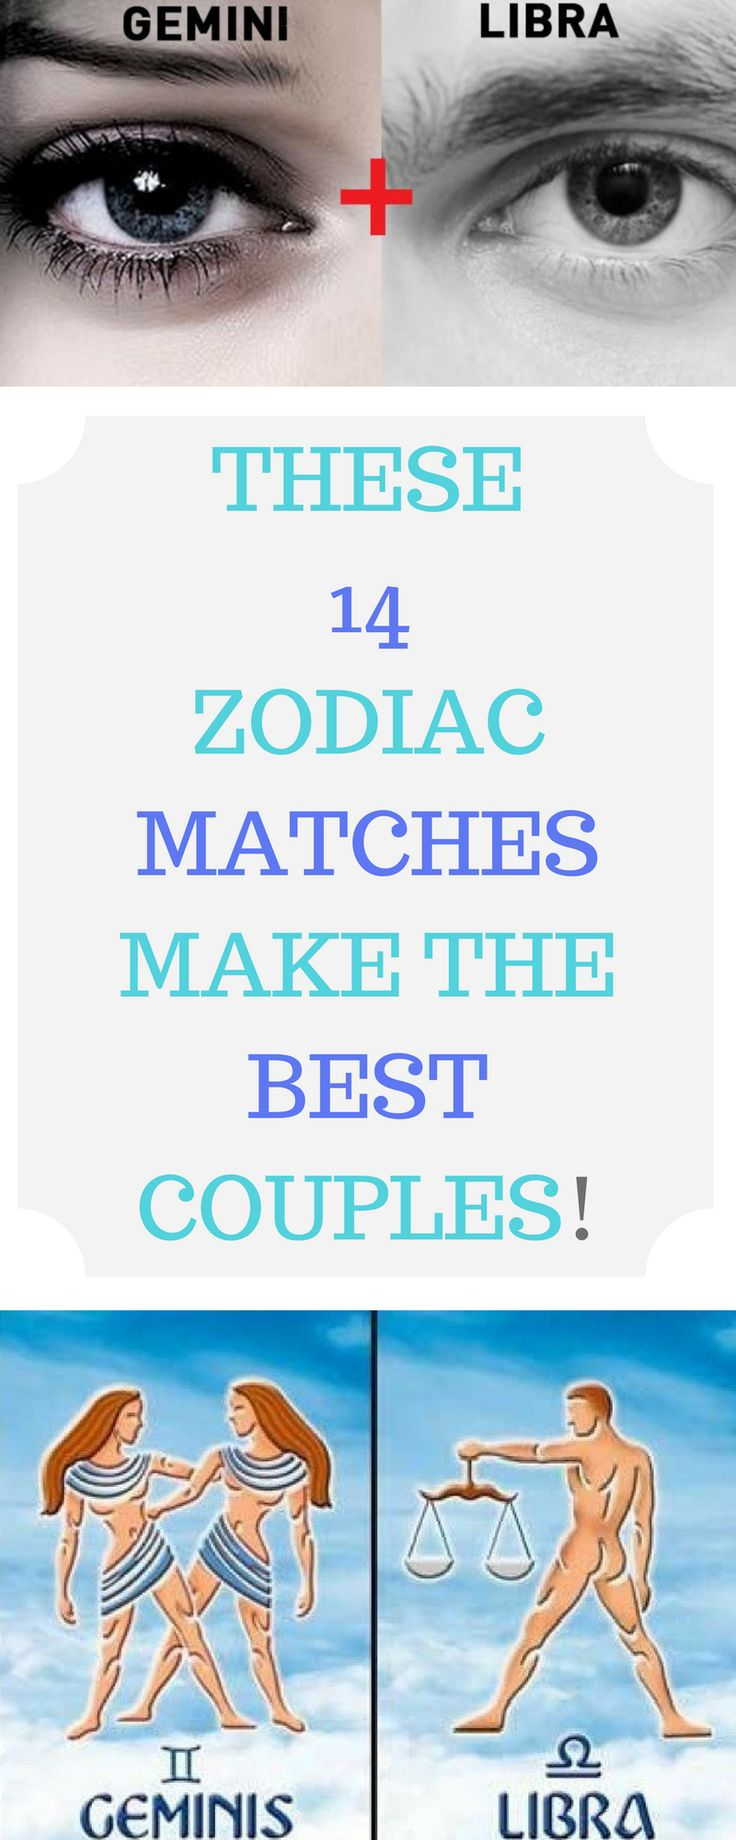 ..THESE 14 ZODIAC MATCHES MAKE THE BEST COUPLES!